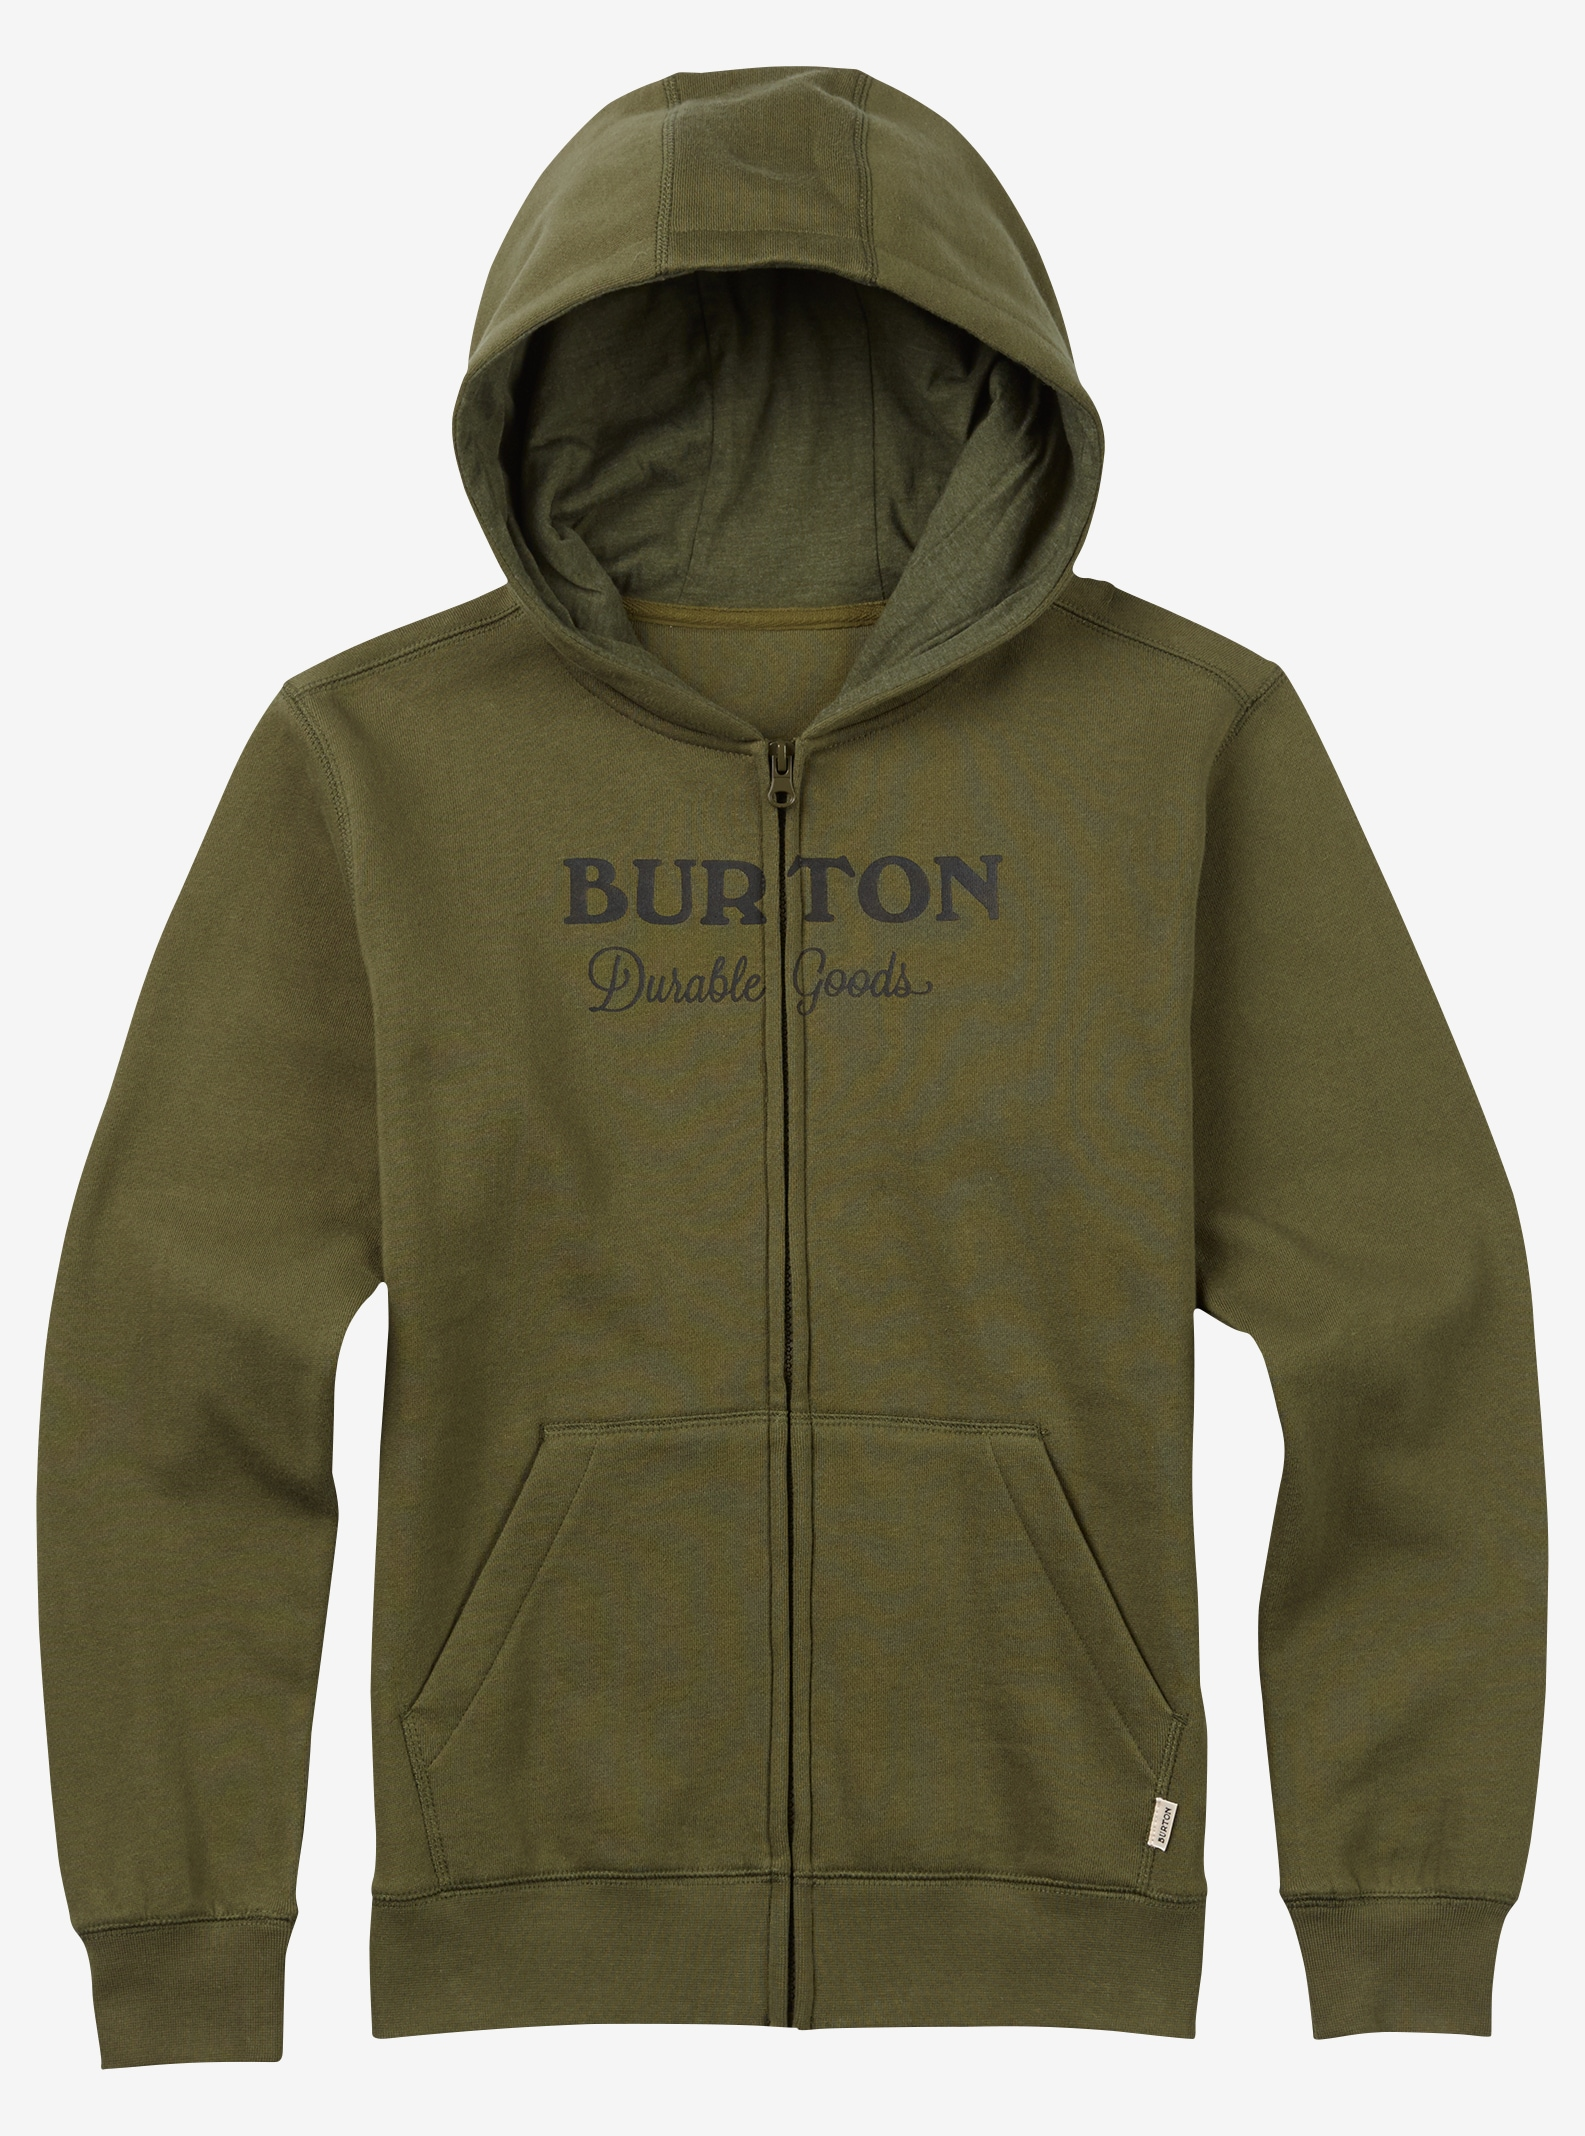 Boys' Burton Durable Goods Full-Zip Hoodie shown in Dusty Olive